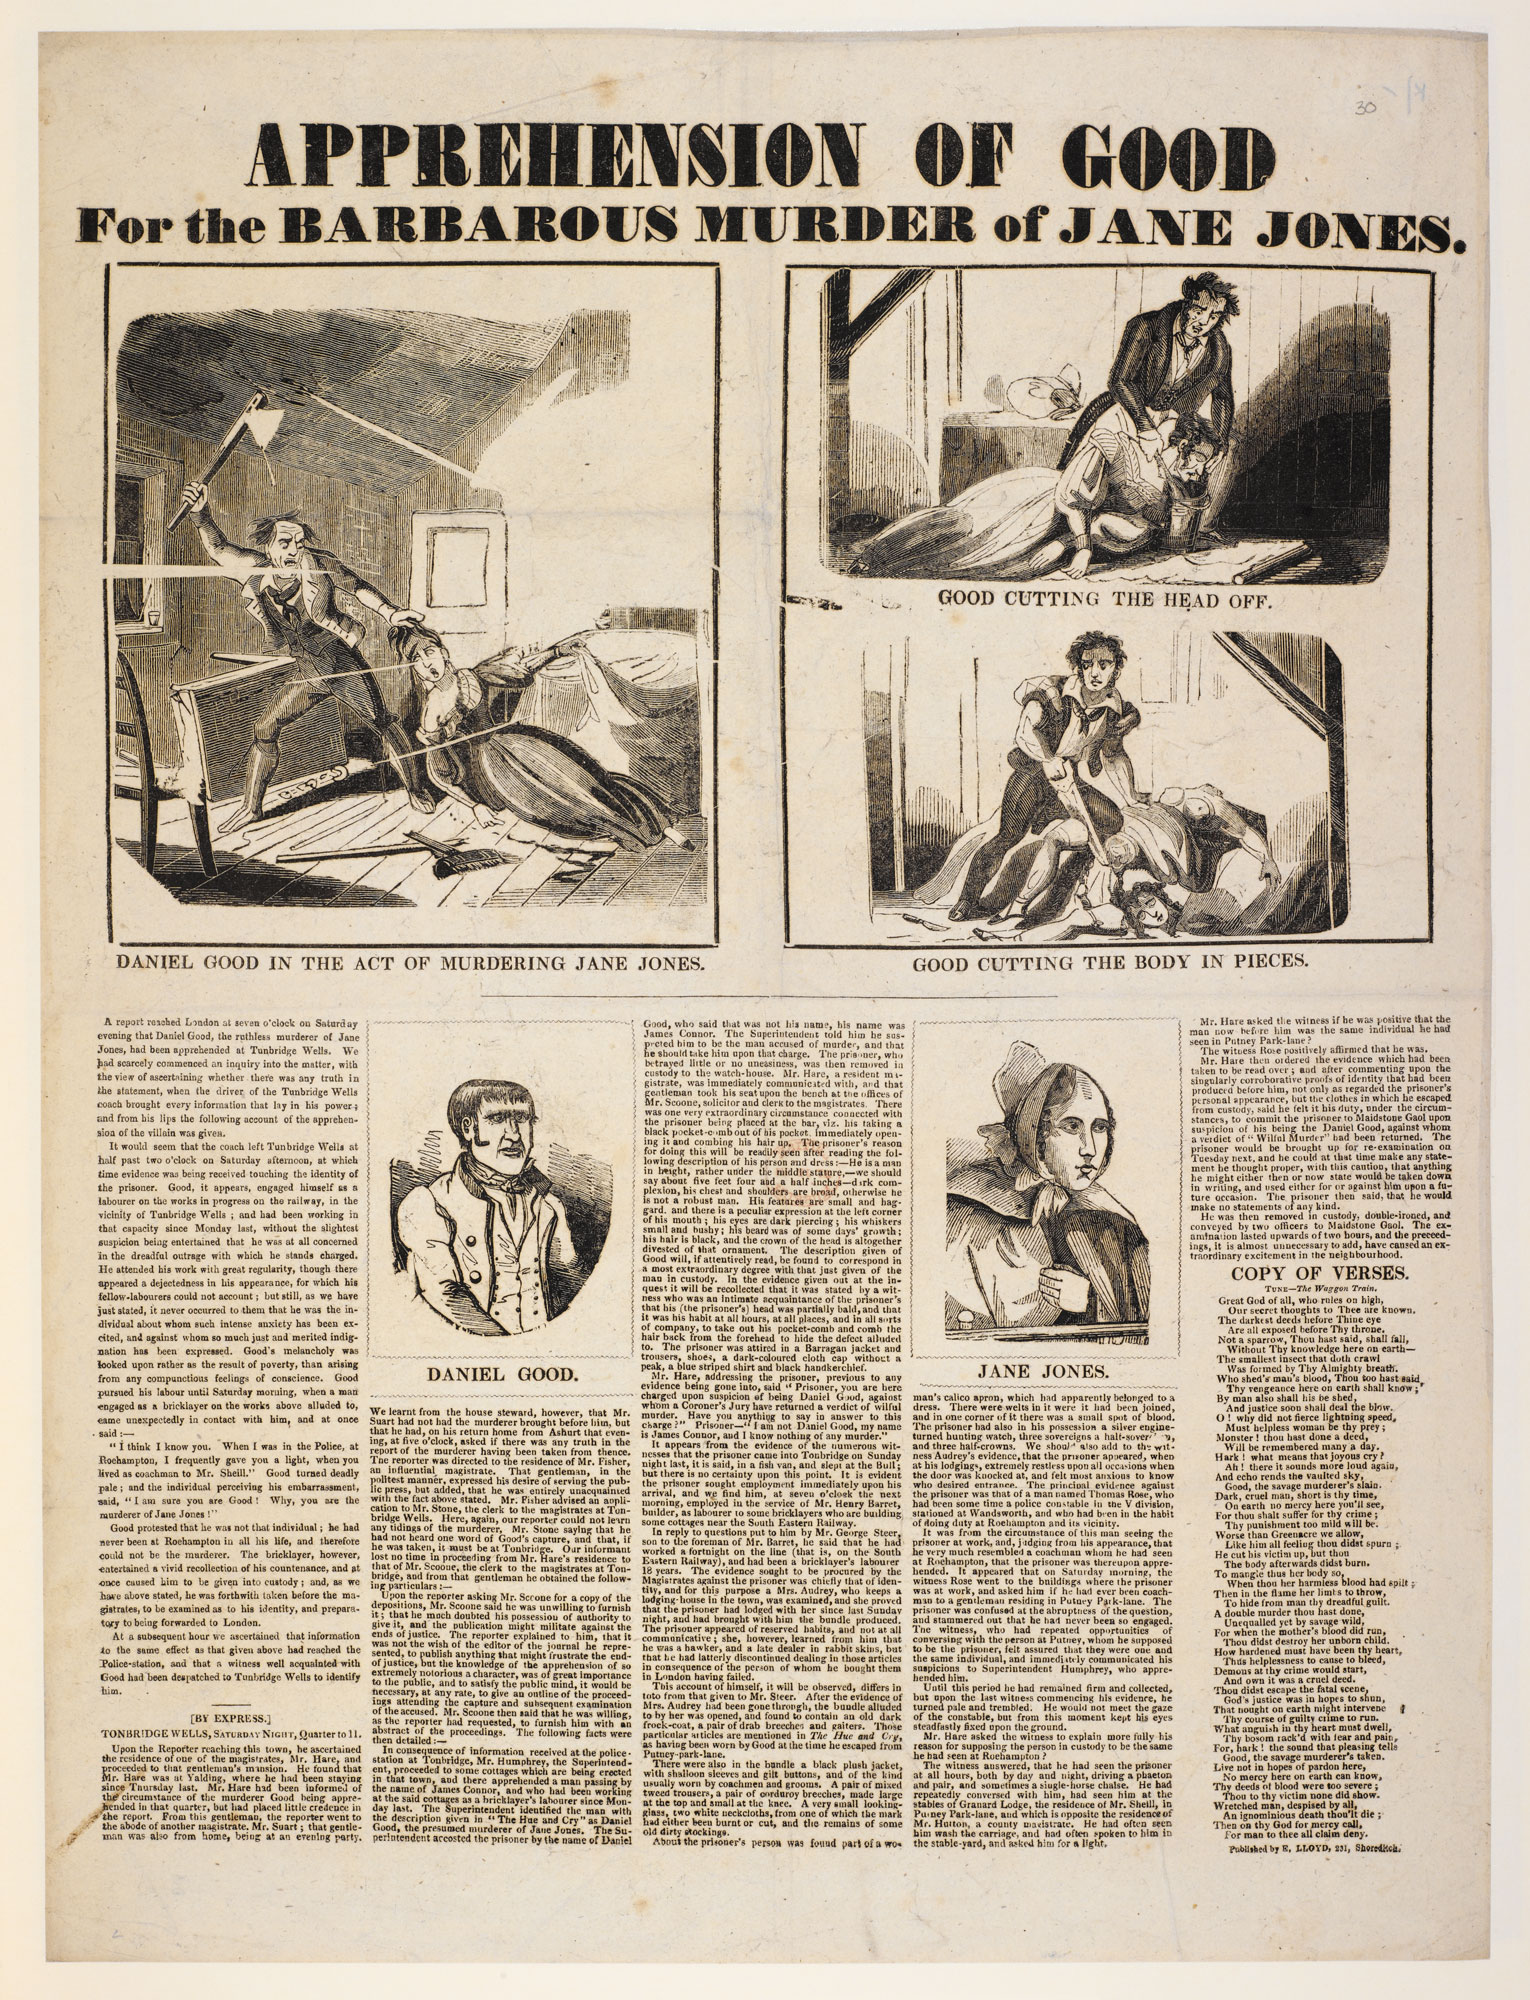 Broadside: Apprehension of Good for the barbarous murder of Jane Jones [page: single sheet]